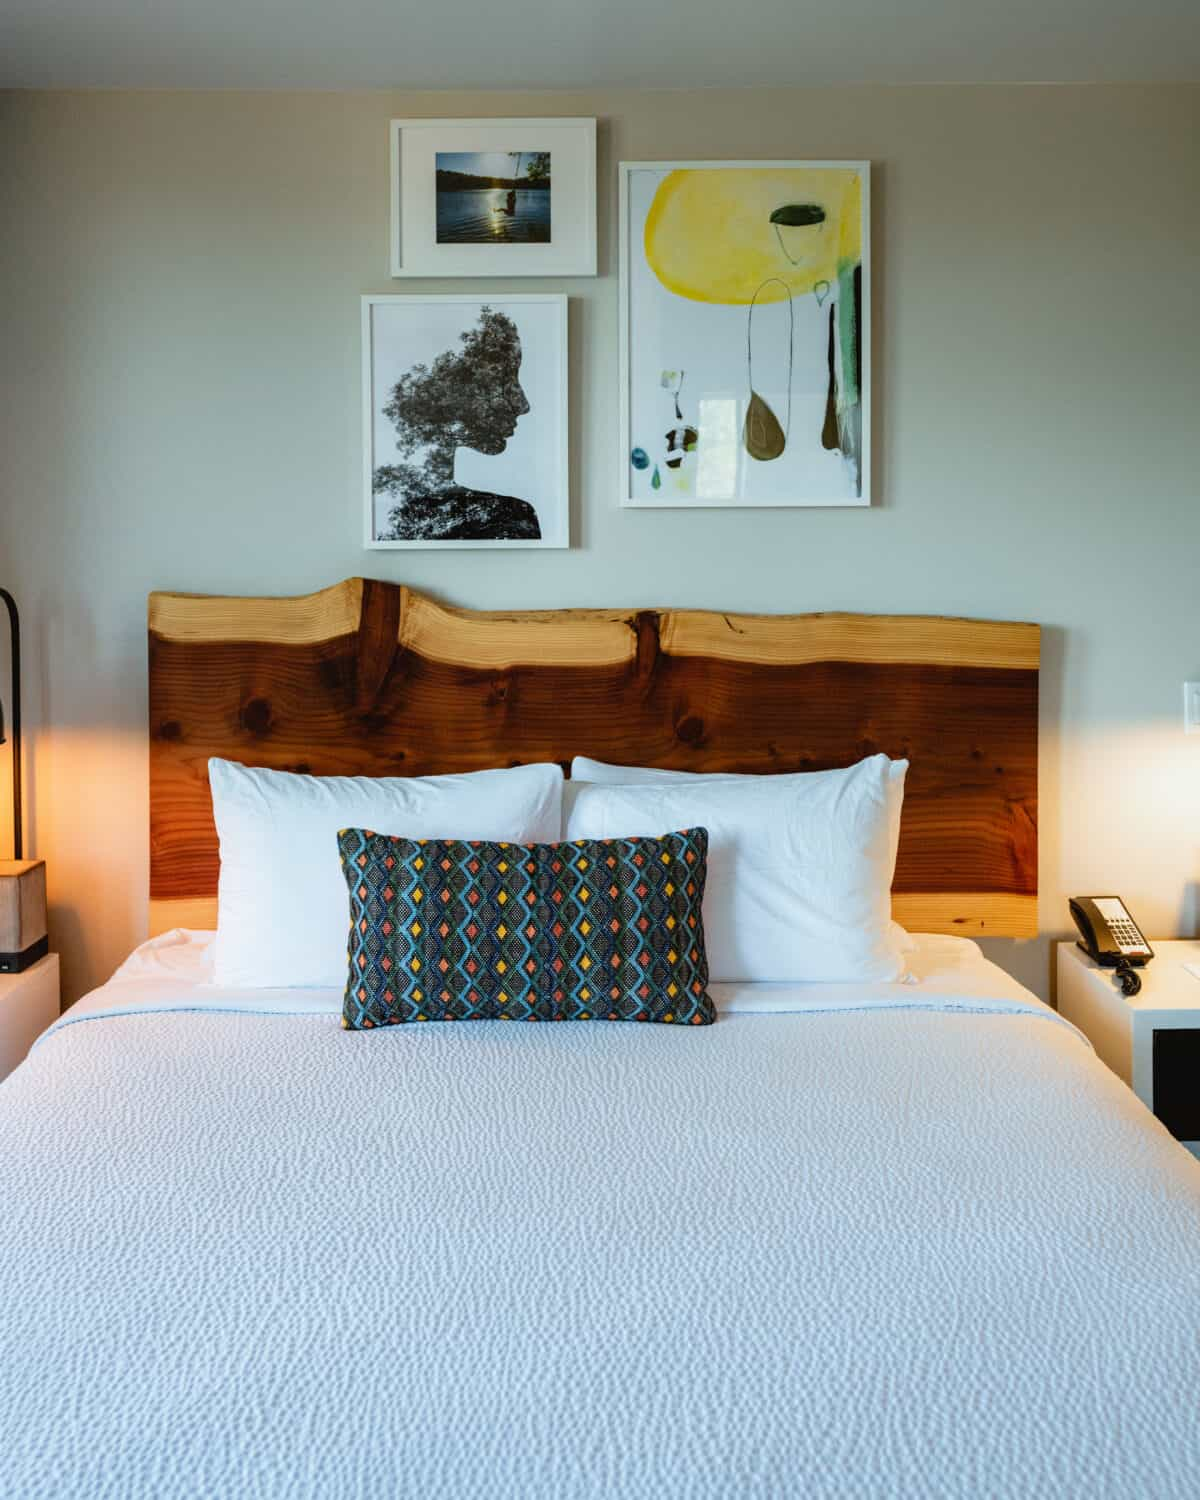 Inside suite of Independence Hotel on a Willamette Valley itinerary